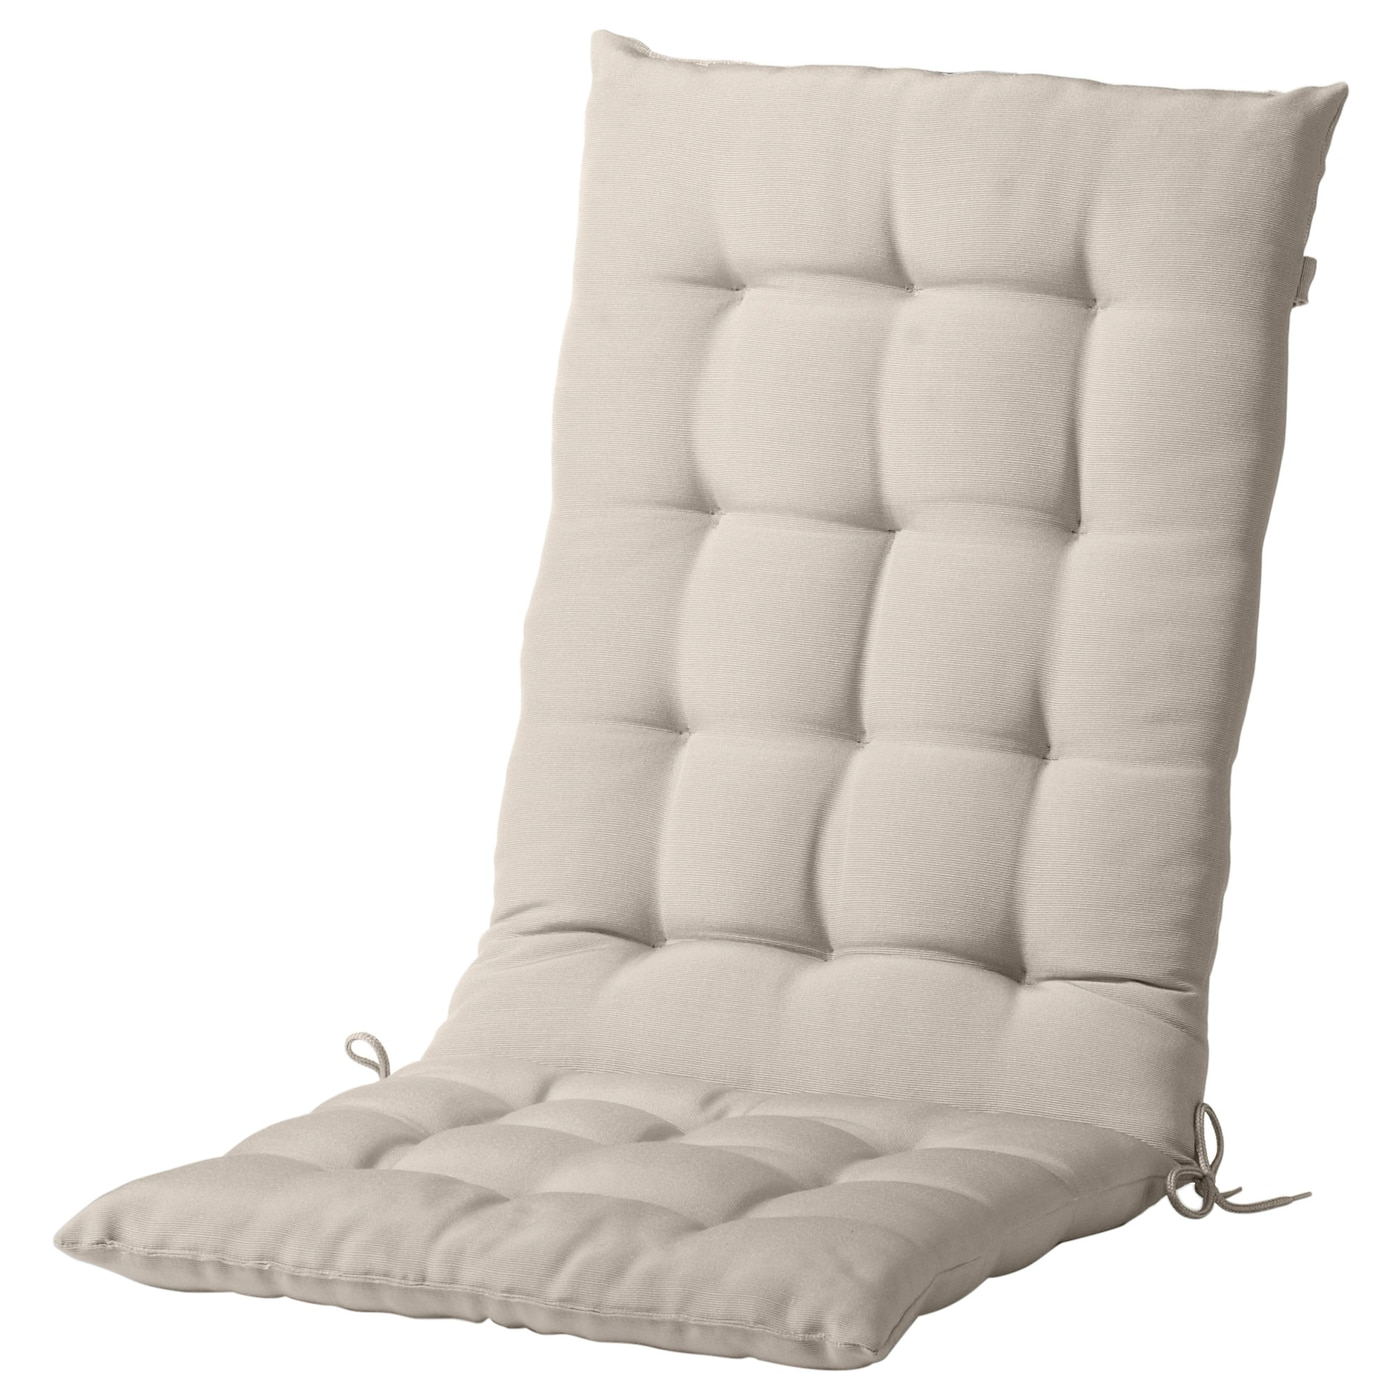 IKEA HALLO Seat Back Cushion Outdoor